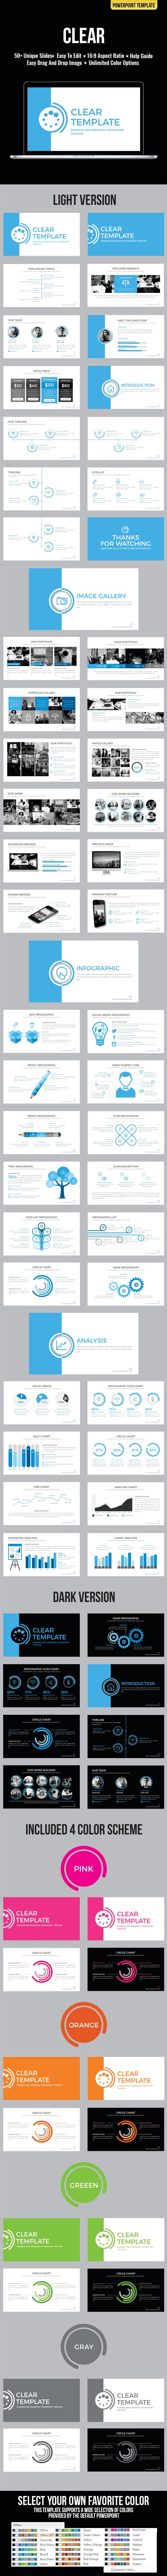 Clear Powerpoint Template #design #slides Download: http://graphicriver.net/item/clear-powerpoint-template/12445795?ref=ksioks